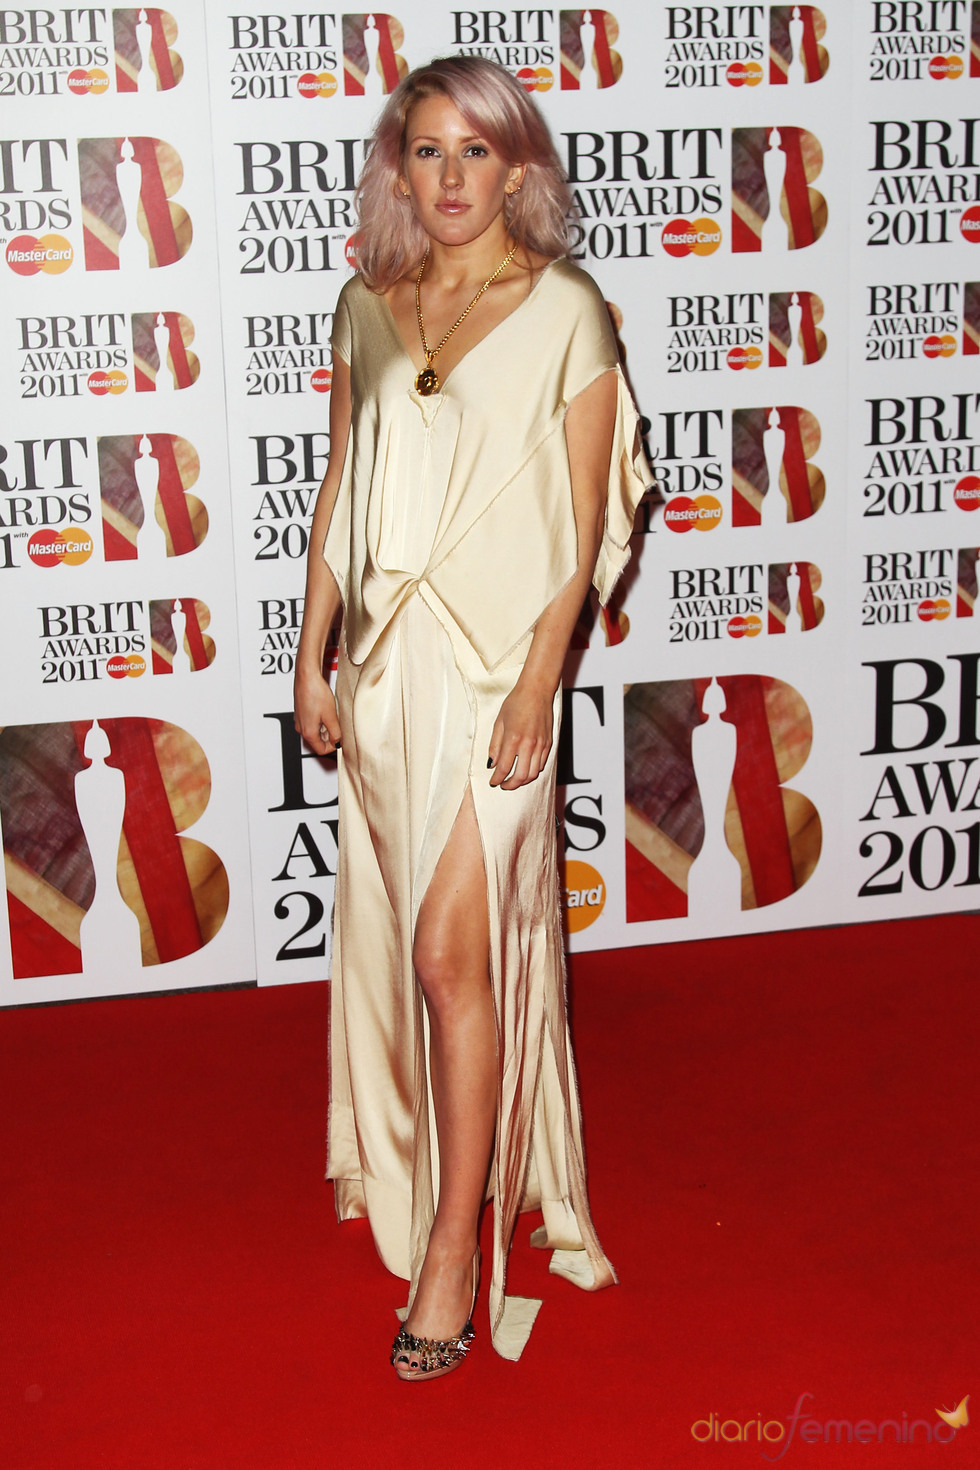 Ellie Goulding en los Brit Awards 2011